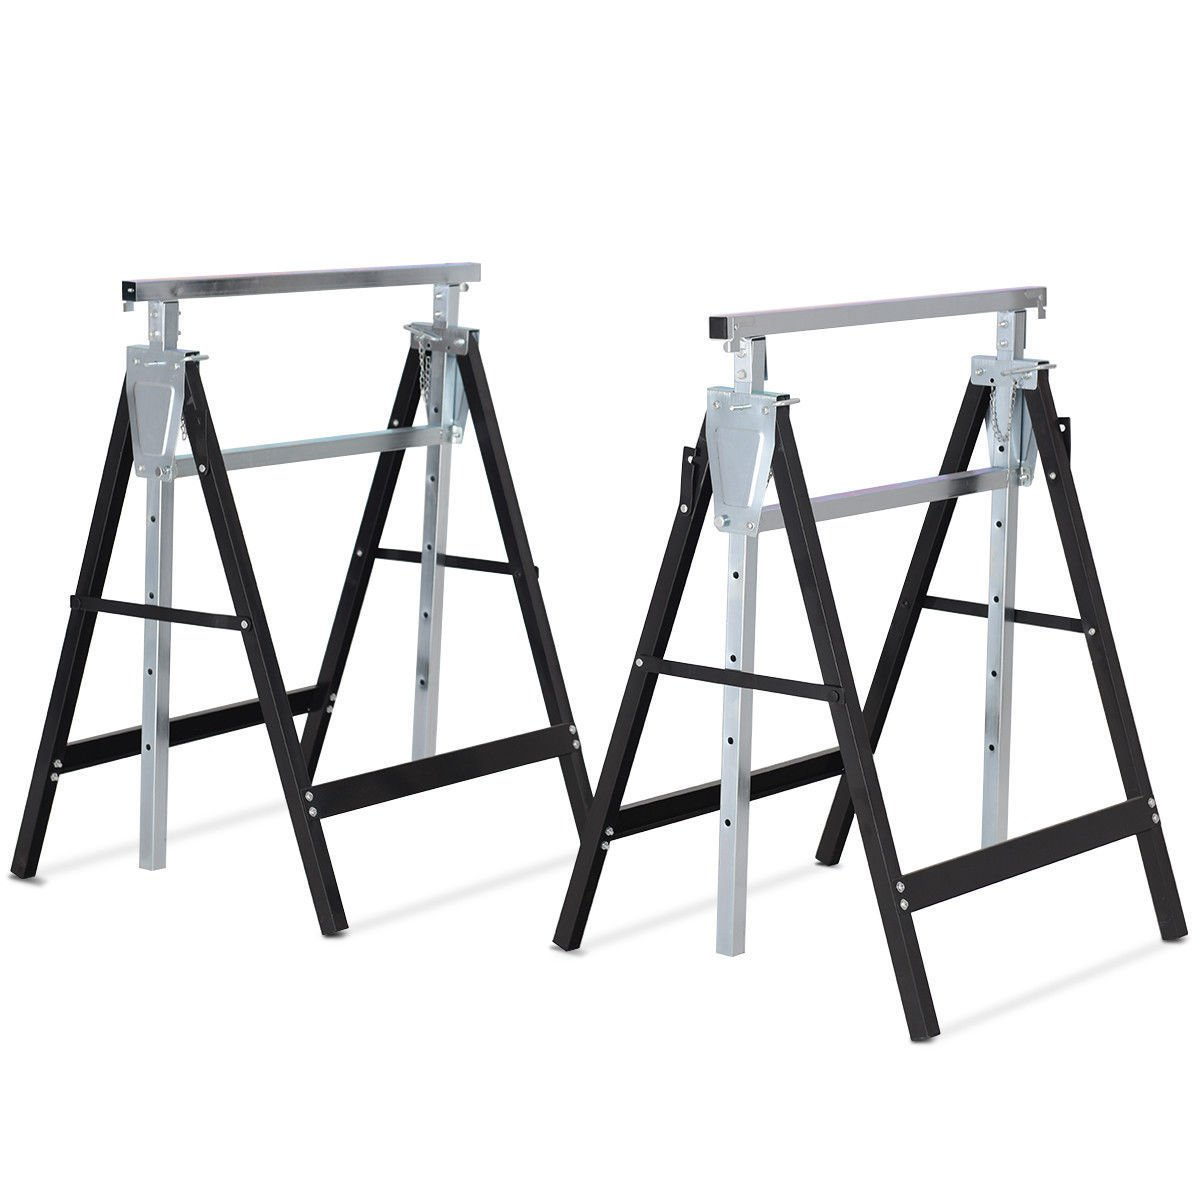 Moon Daughter 2pc Saw Horse Height Adjustable Folding Heavy Duty Trestle 440 lbs Capacity